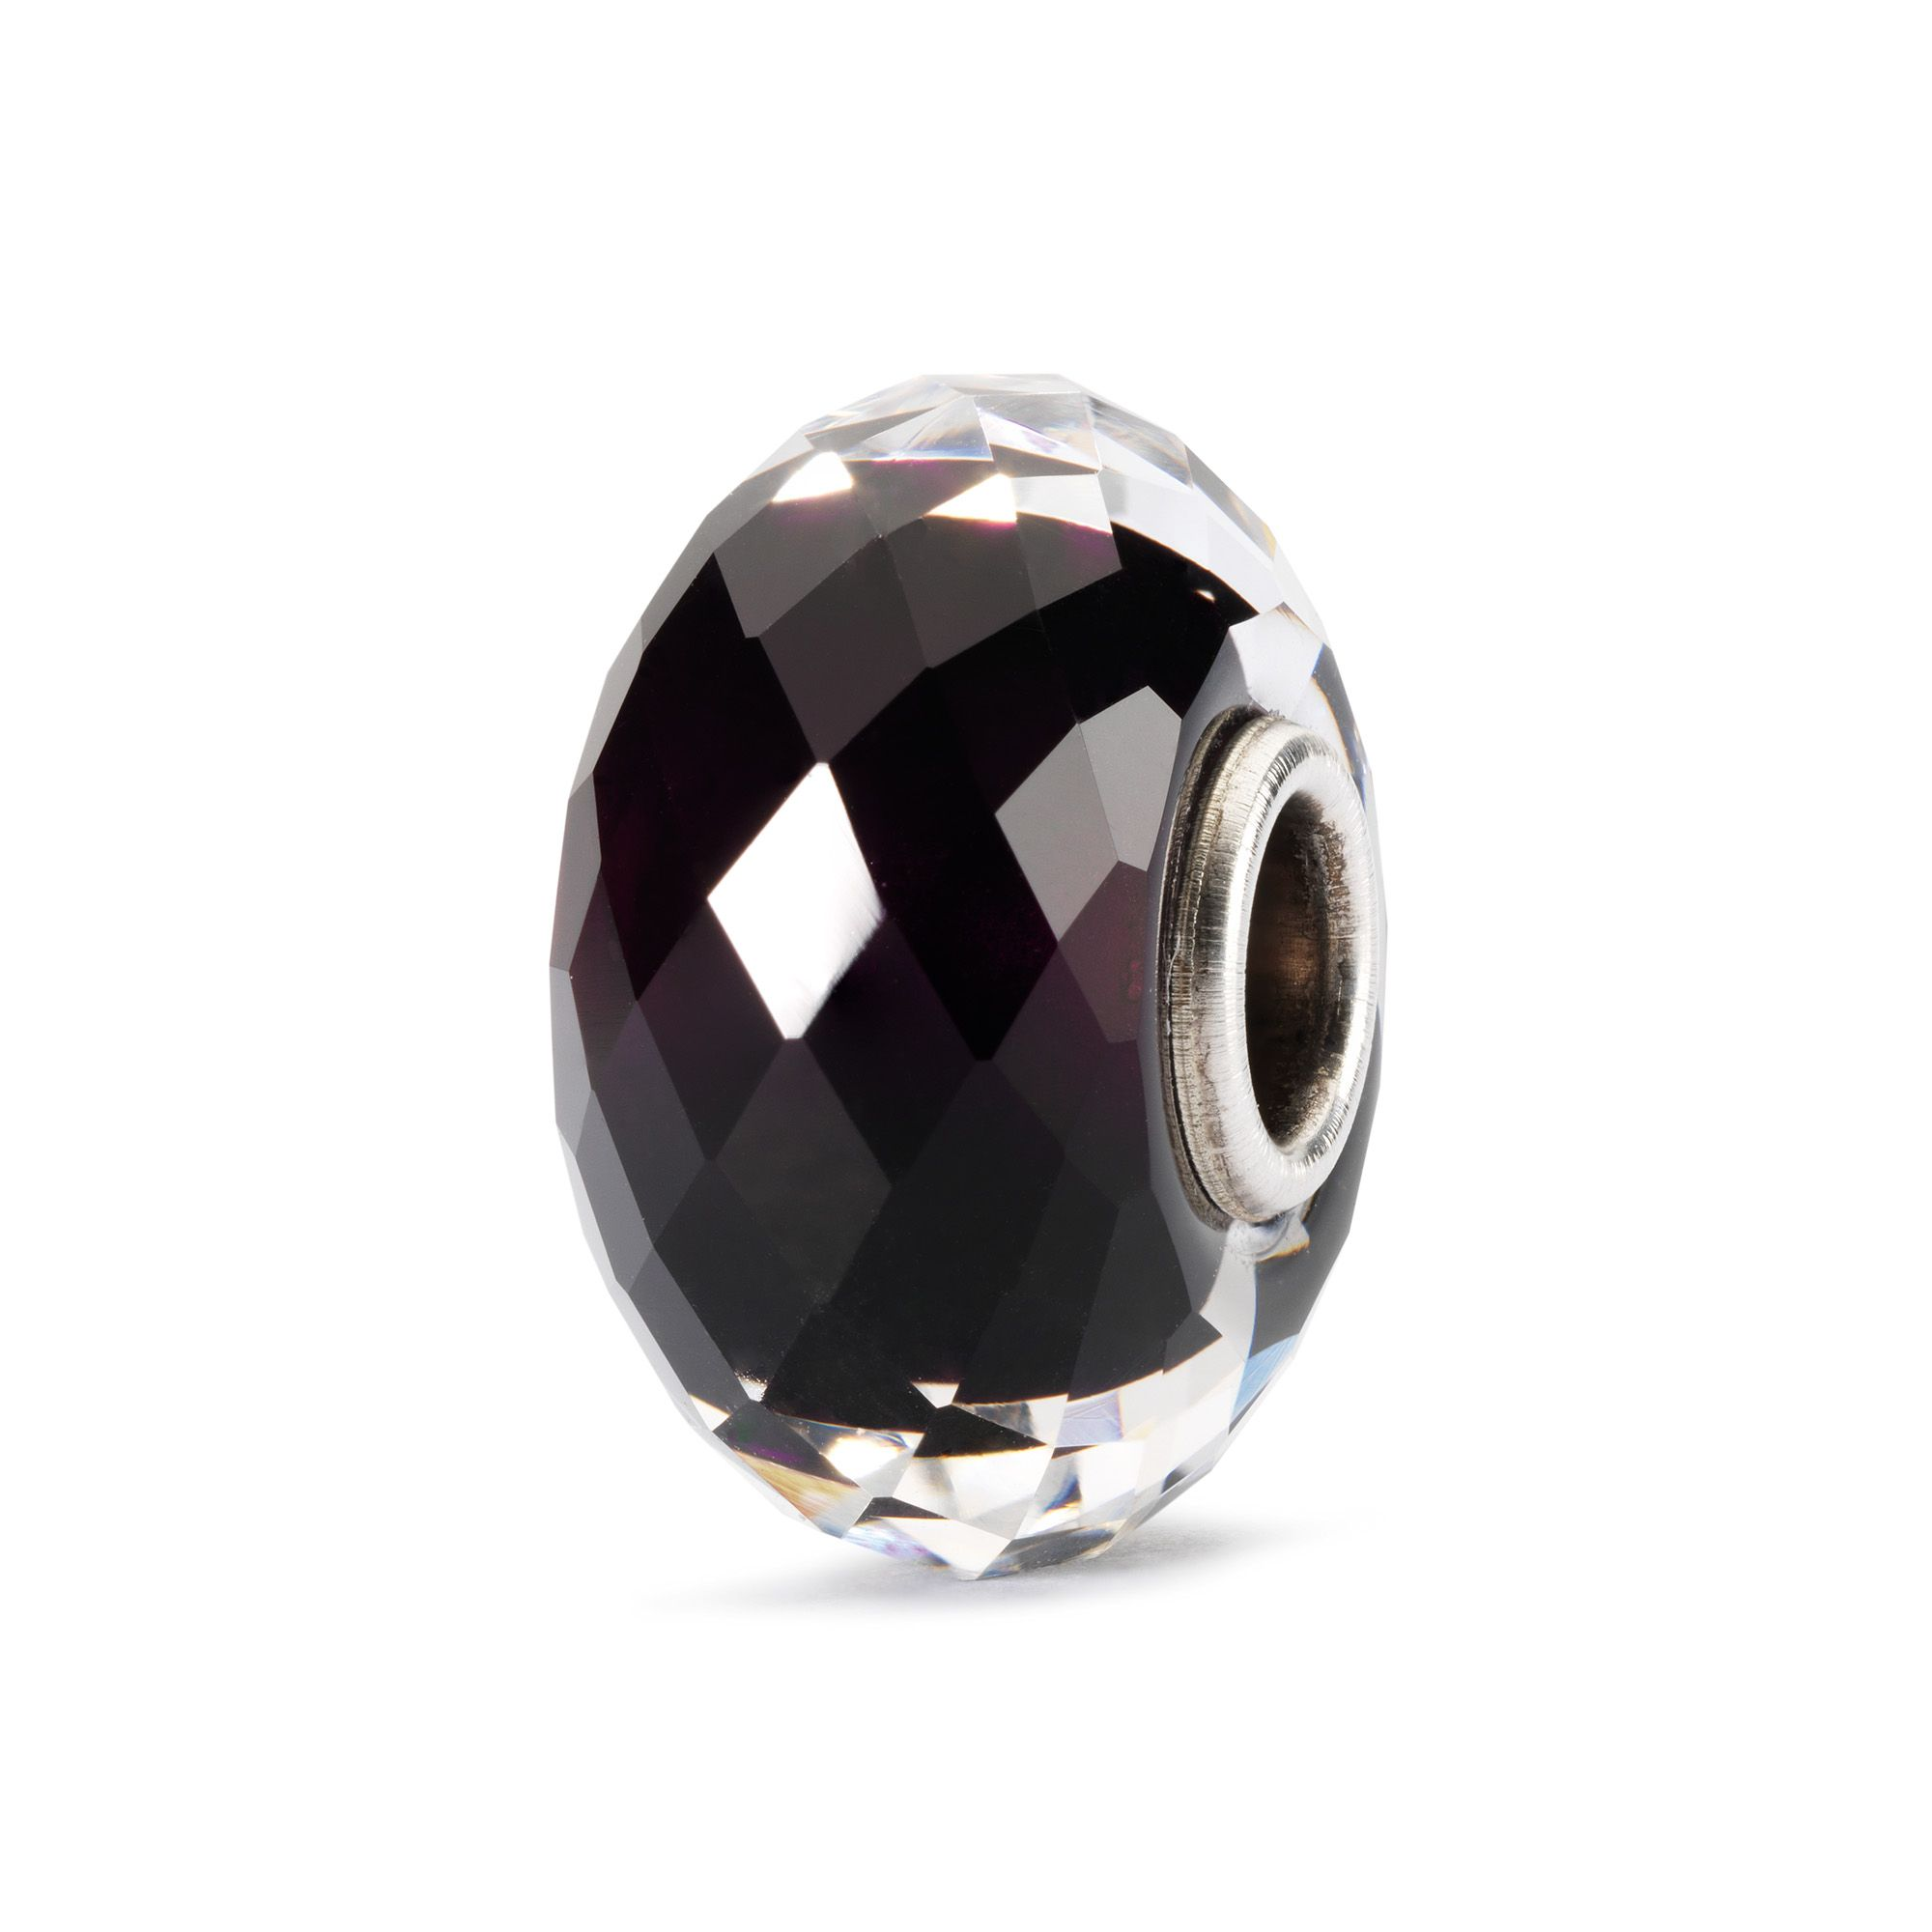 Sahara night facet sterling silver murano charm